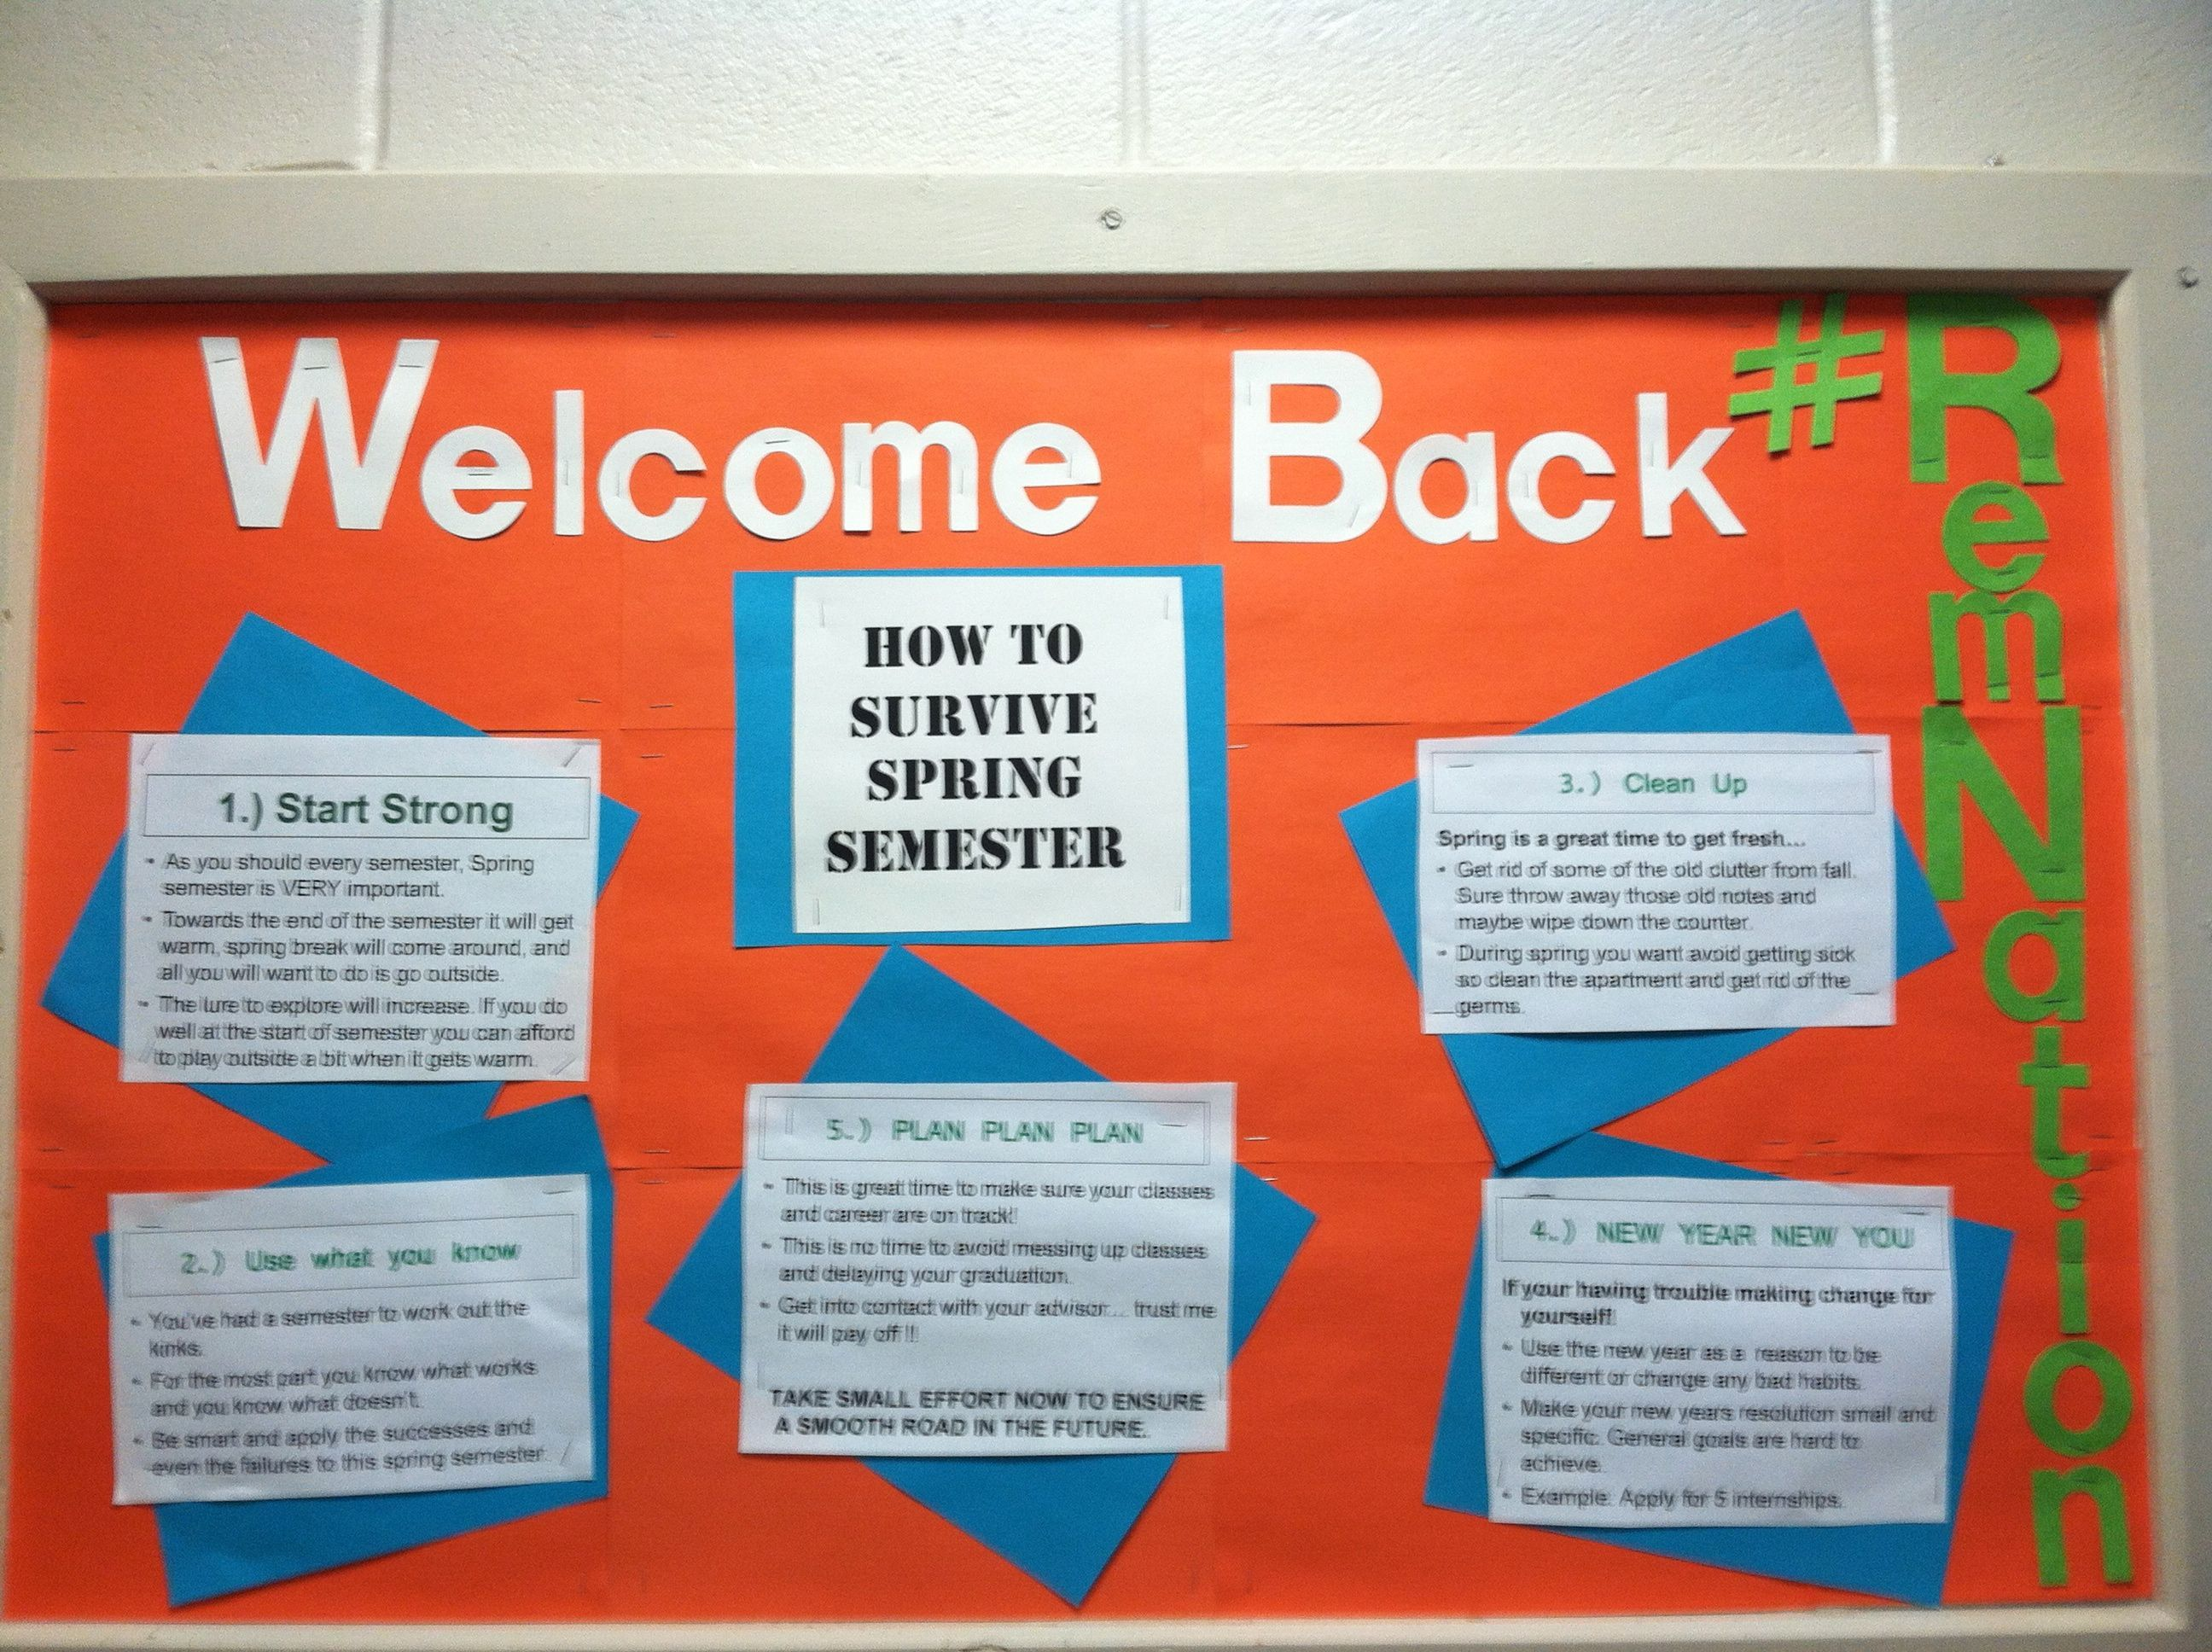 """Remelodeon"" Second semester survival welcome back board by Josh DeLoach, Spring 2013"